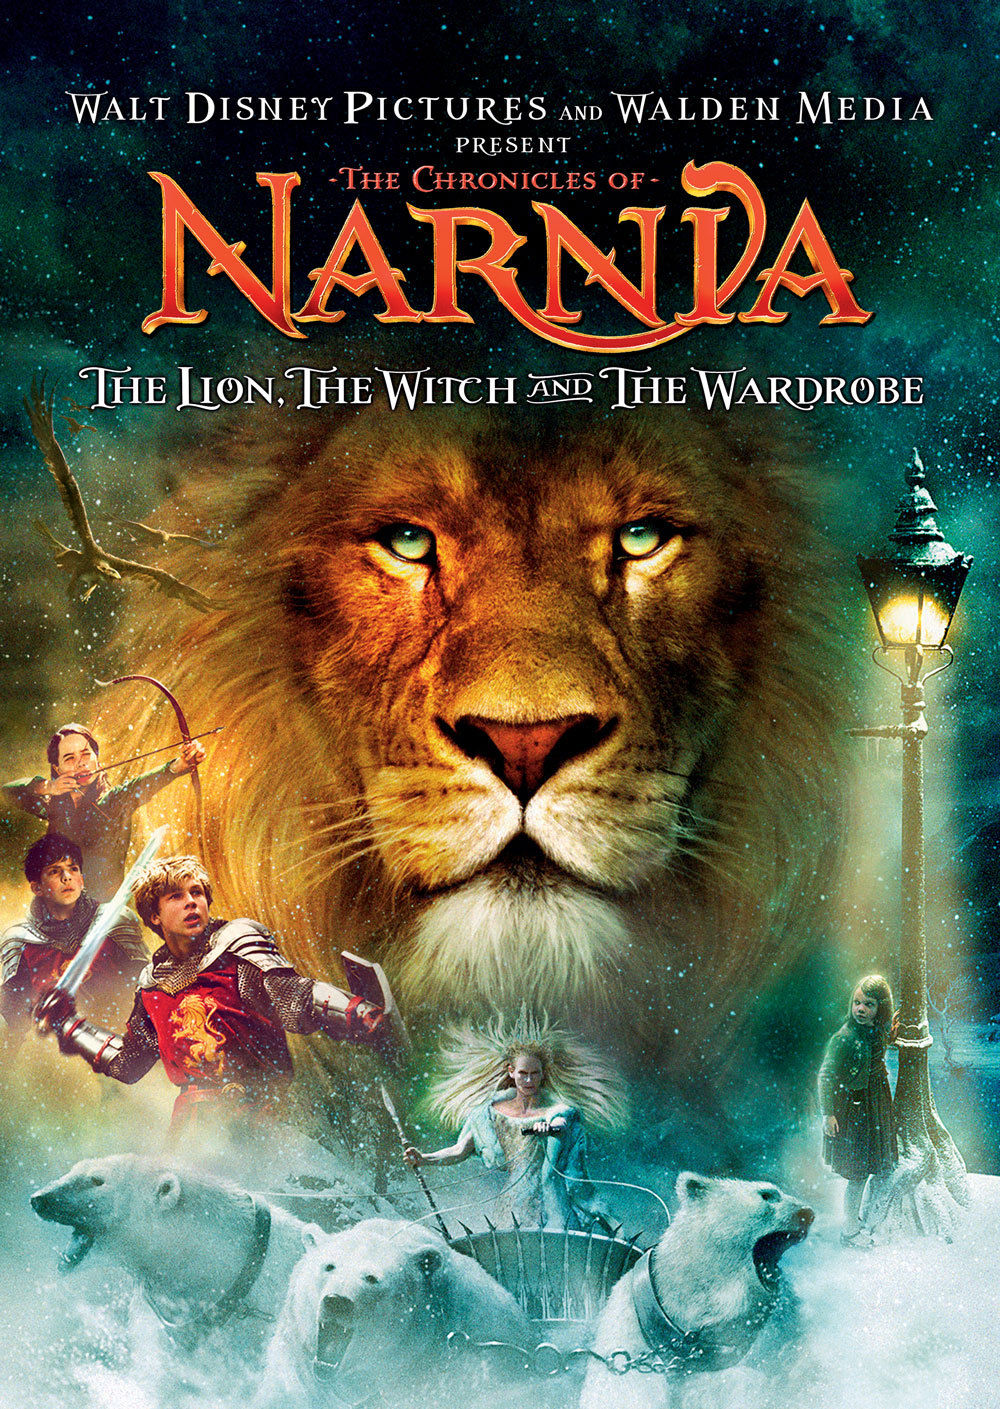 The Chronicles of Narnia: The Lion, the Witch, and the Wardrobe (2005)